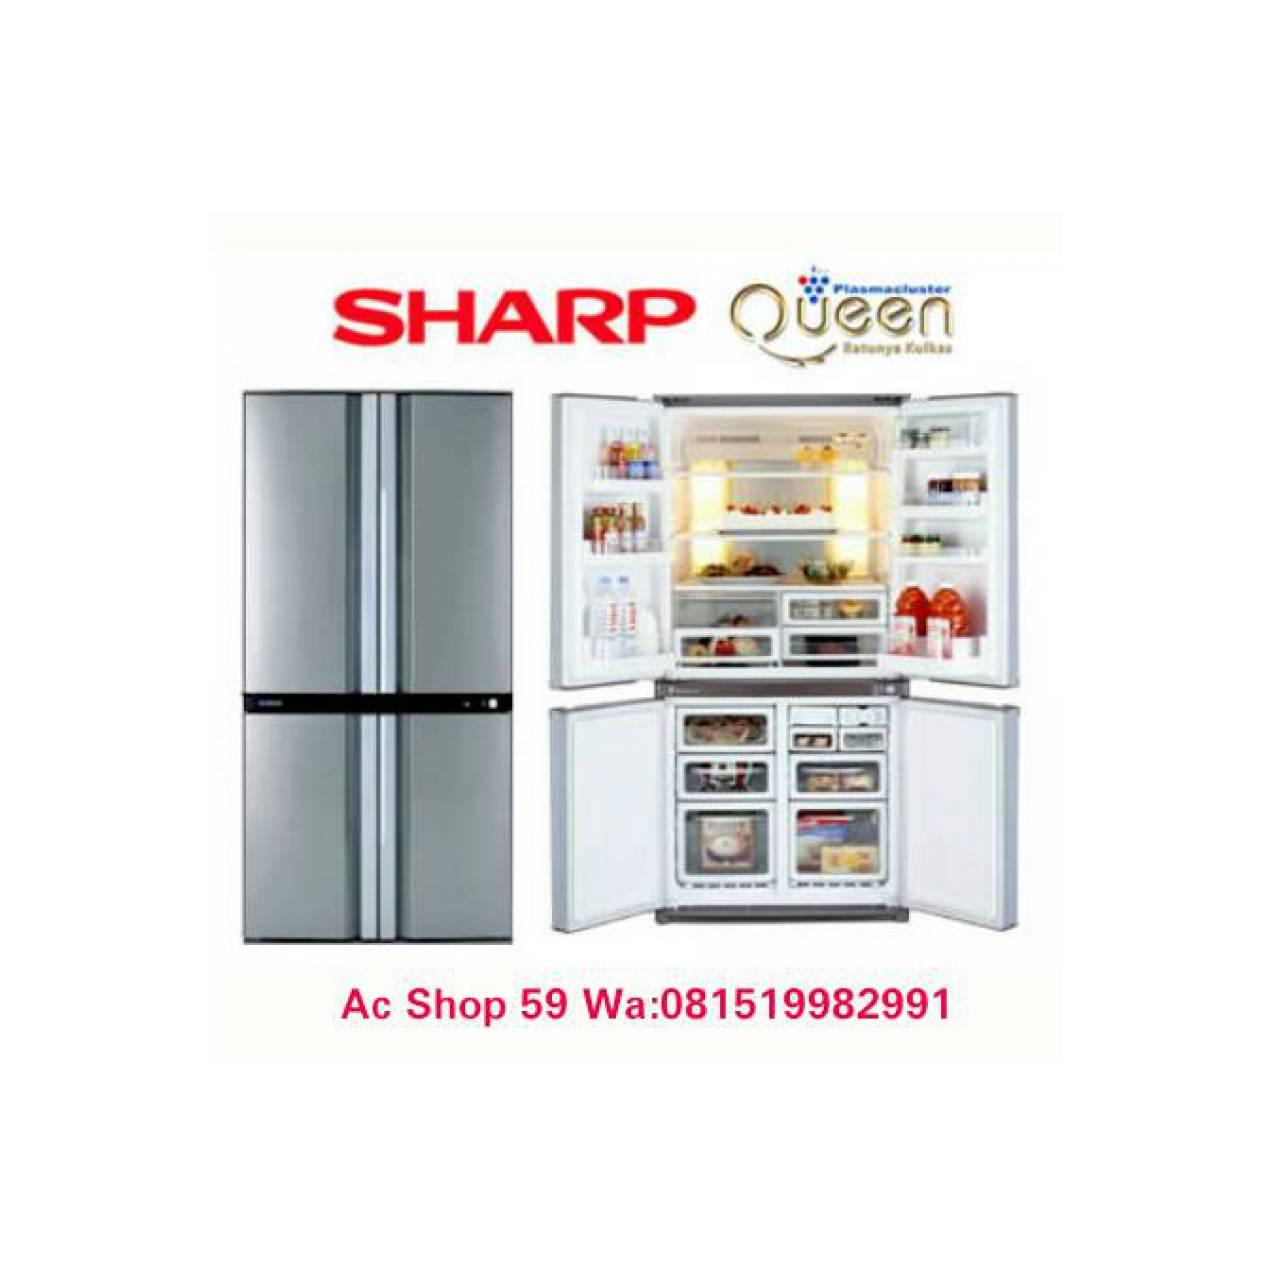 KULKAS SHARP SJ-IF 85 PB-SL,INVERTER SIDE BY SIDE QUEEN SERIES